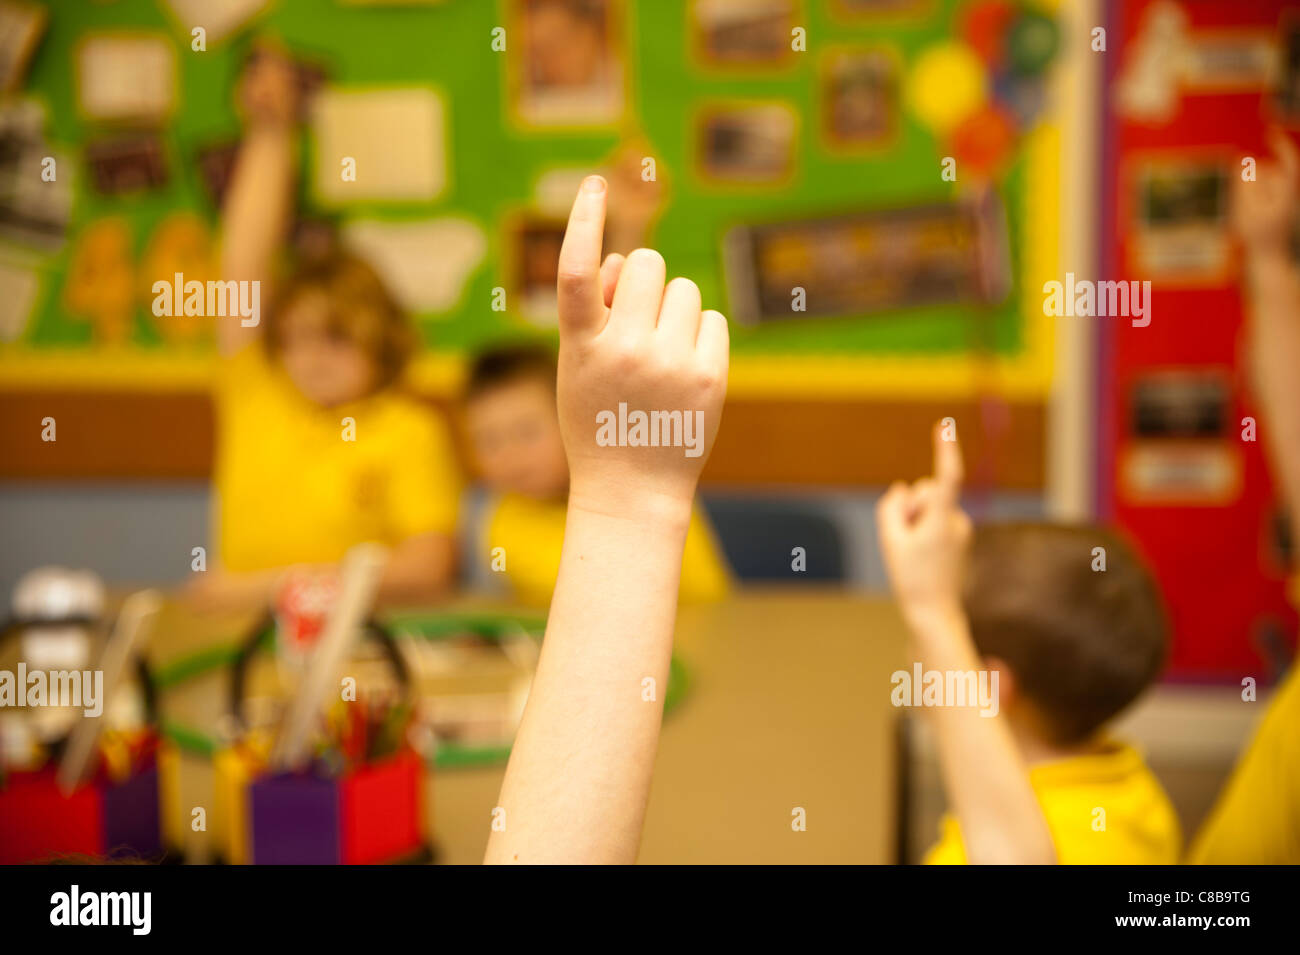 Primary school children in a classroom, Wales UK - hands up answering questions in class - Stock Image